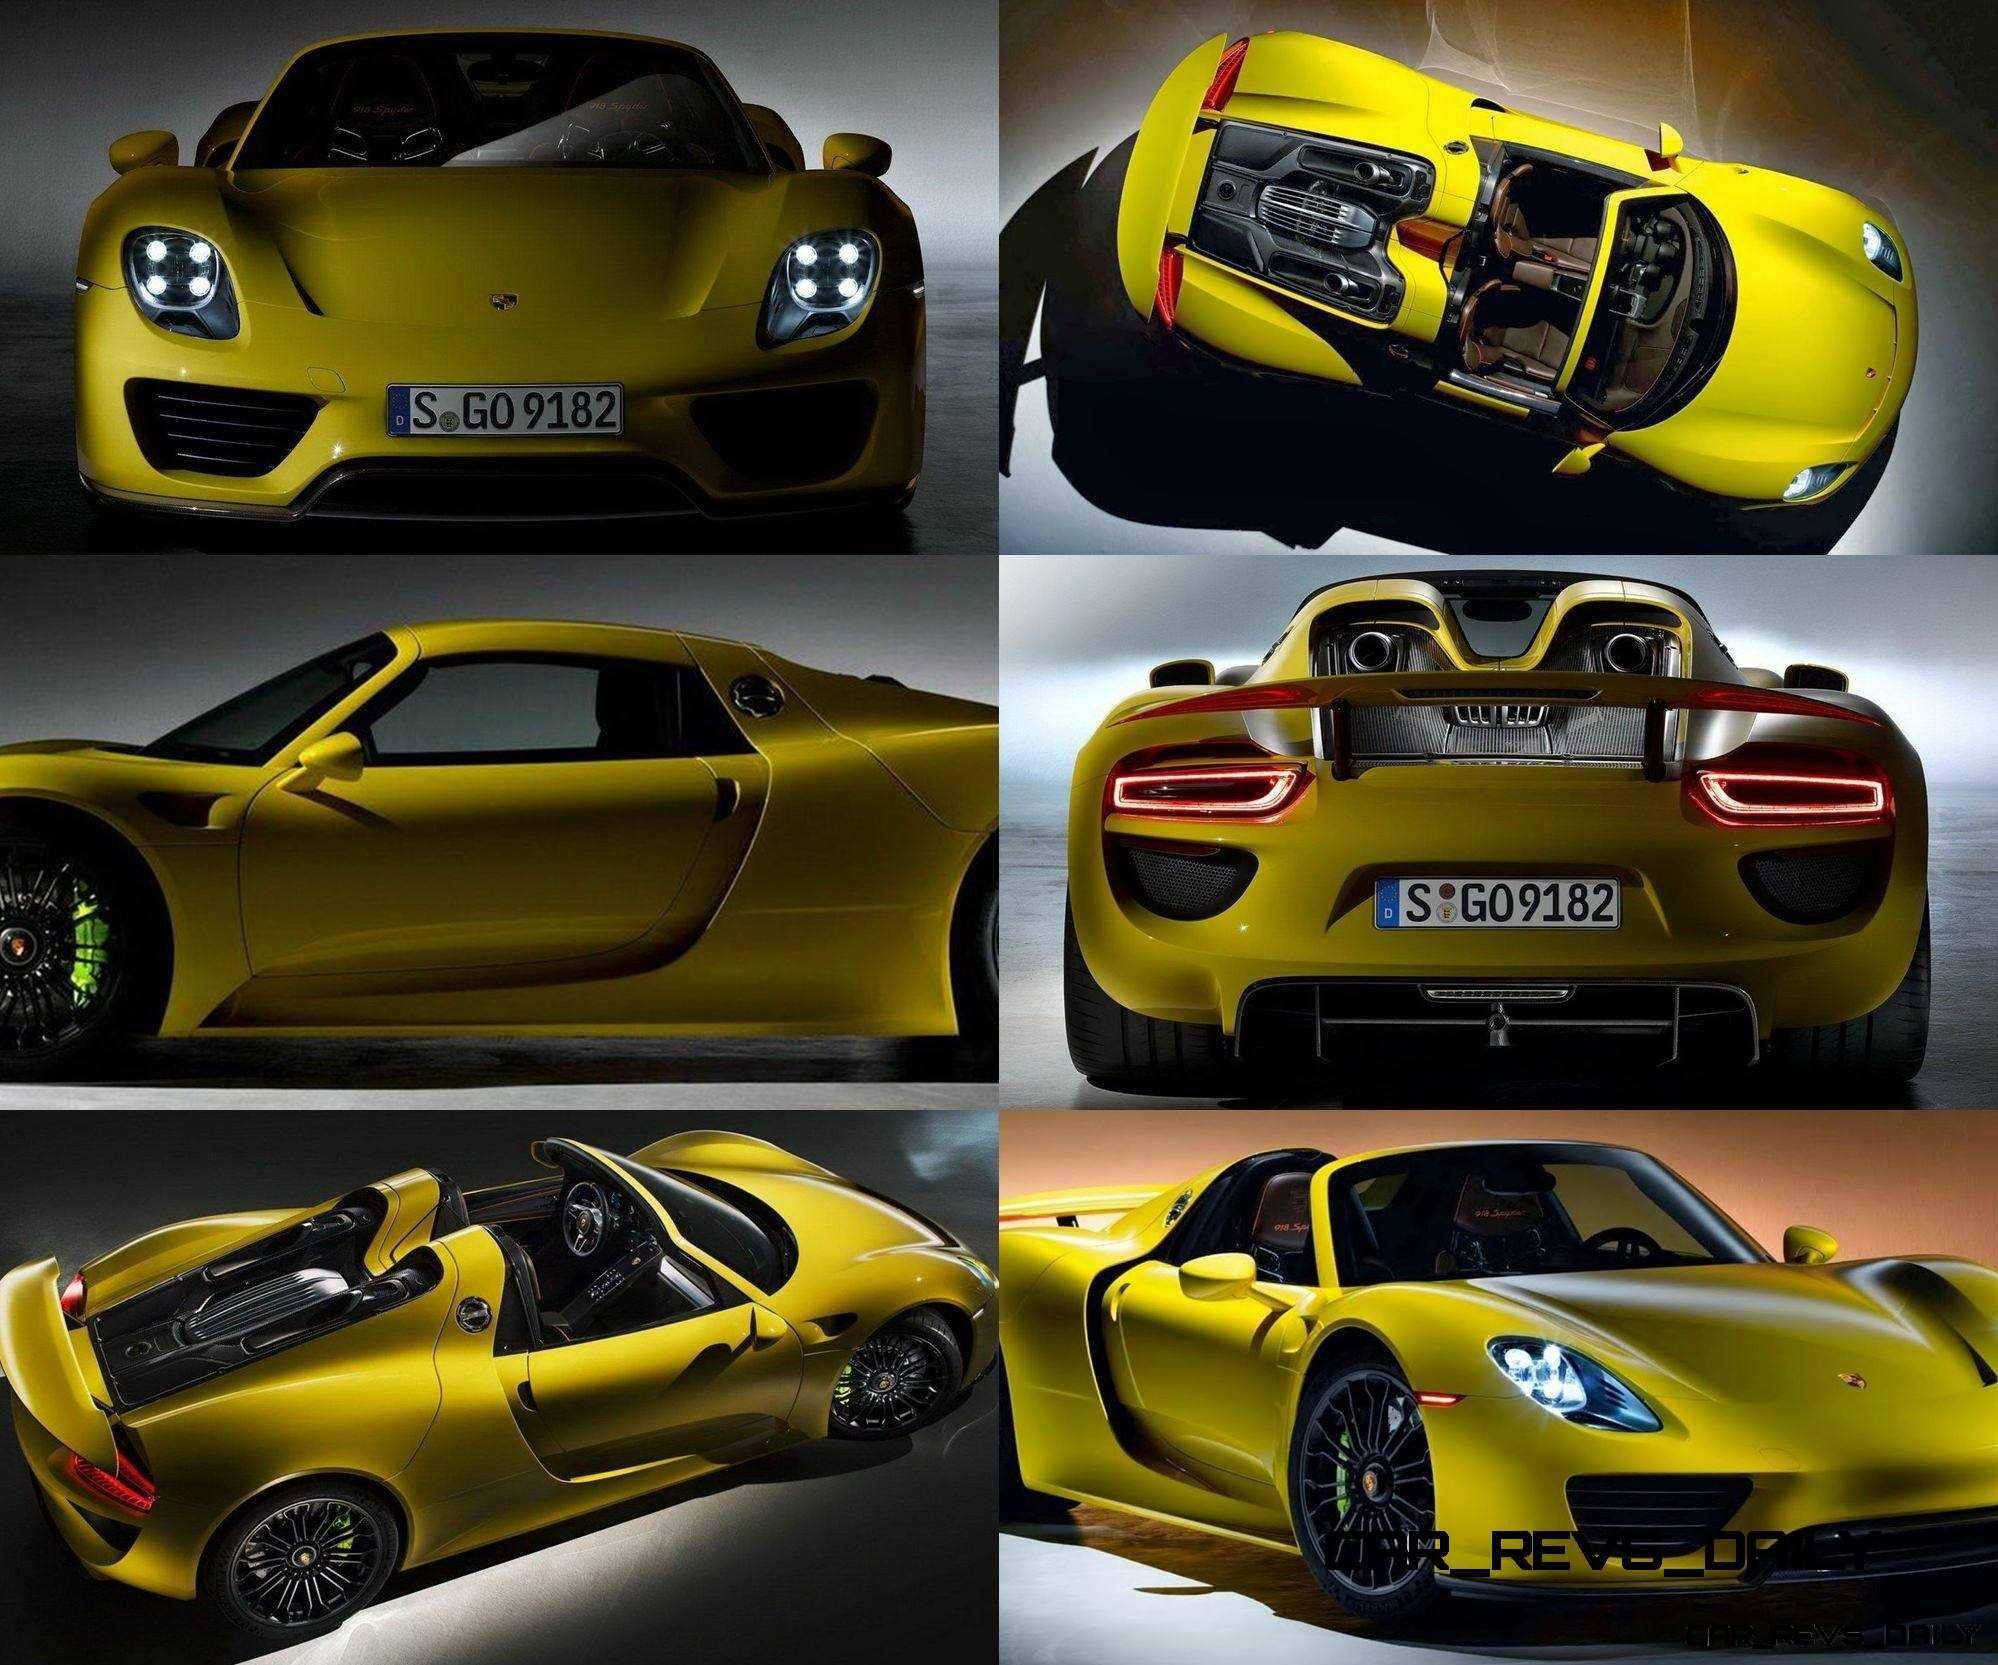 Porsche 918 Spyder: HD Video: 918 Spyder In Hot Track Session + Latest Yellow